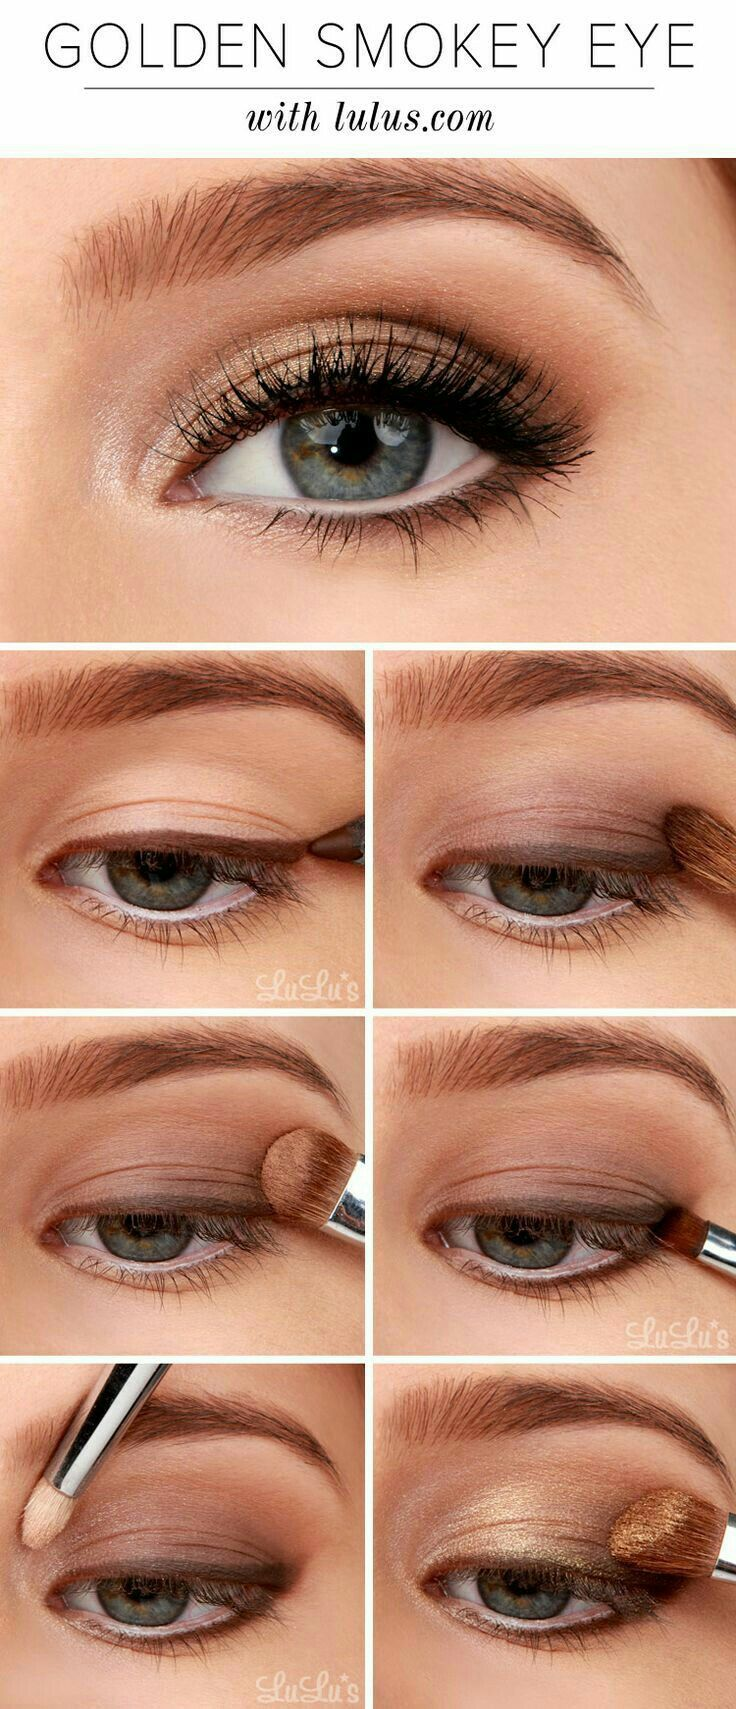 Golden Smokey Eye Make-up Tutorial! :-)